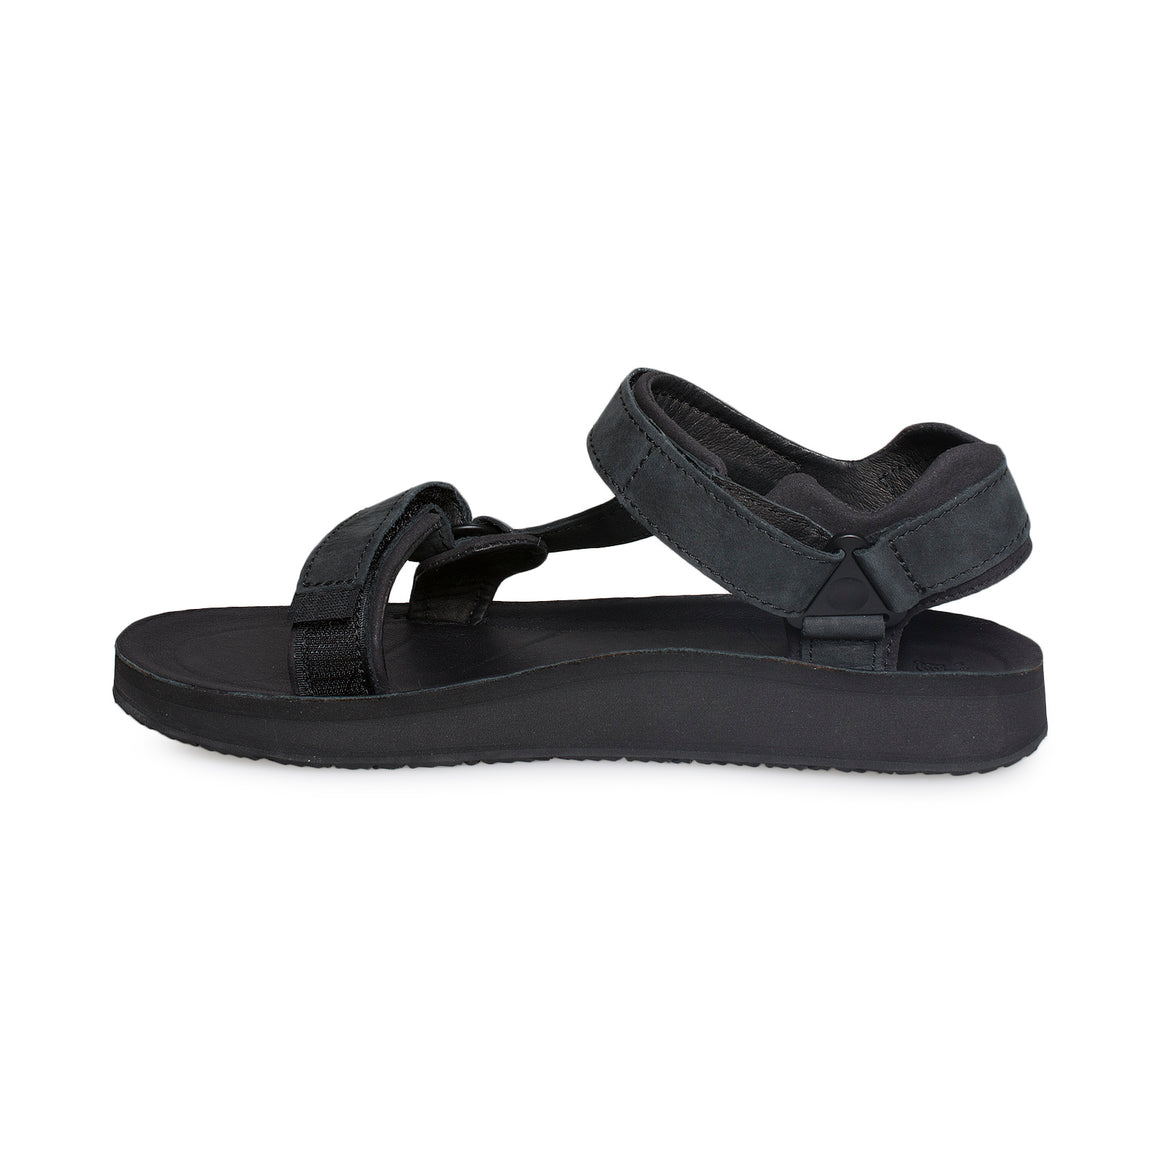 Teva Original Universal Premier Leather Midnight Black Sandals - Women's